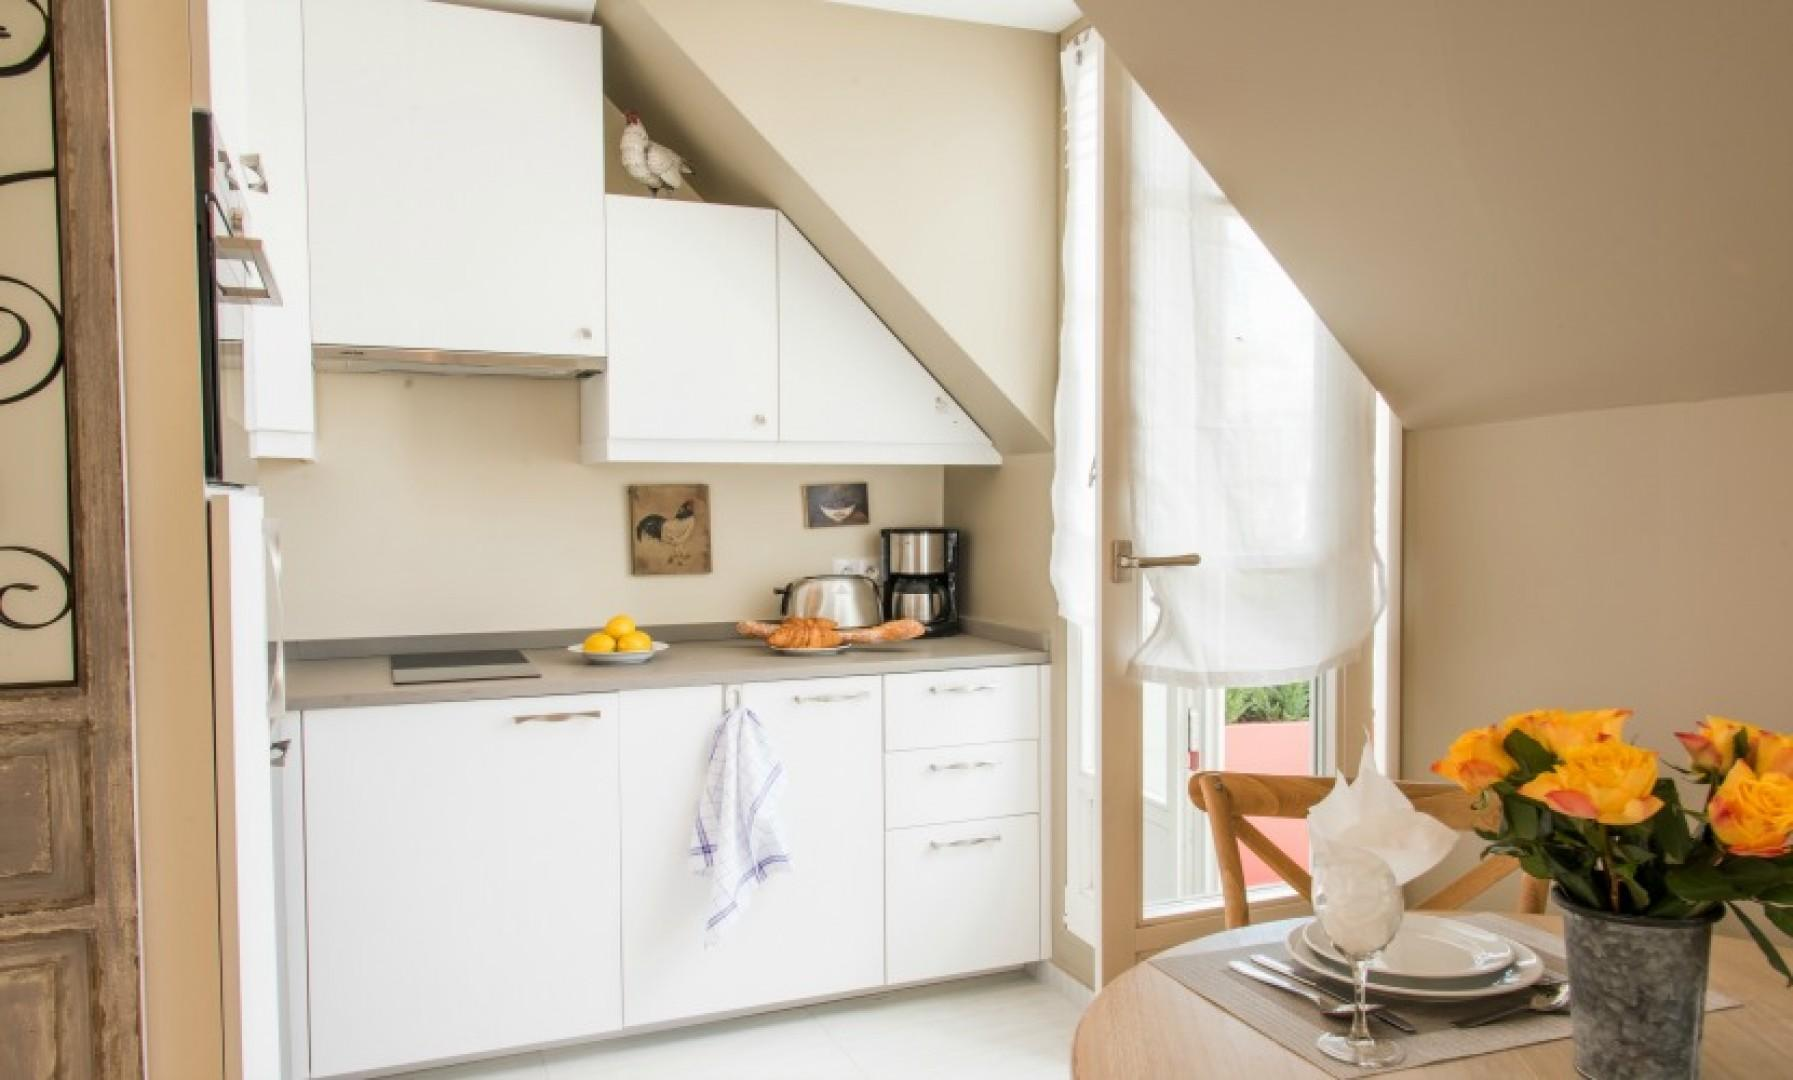 A door to the balcony is available in the kitchen.